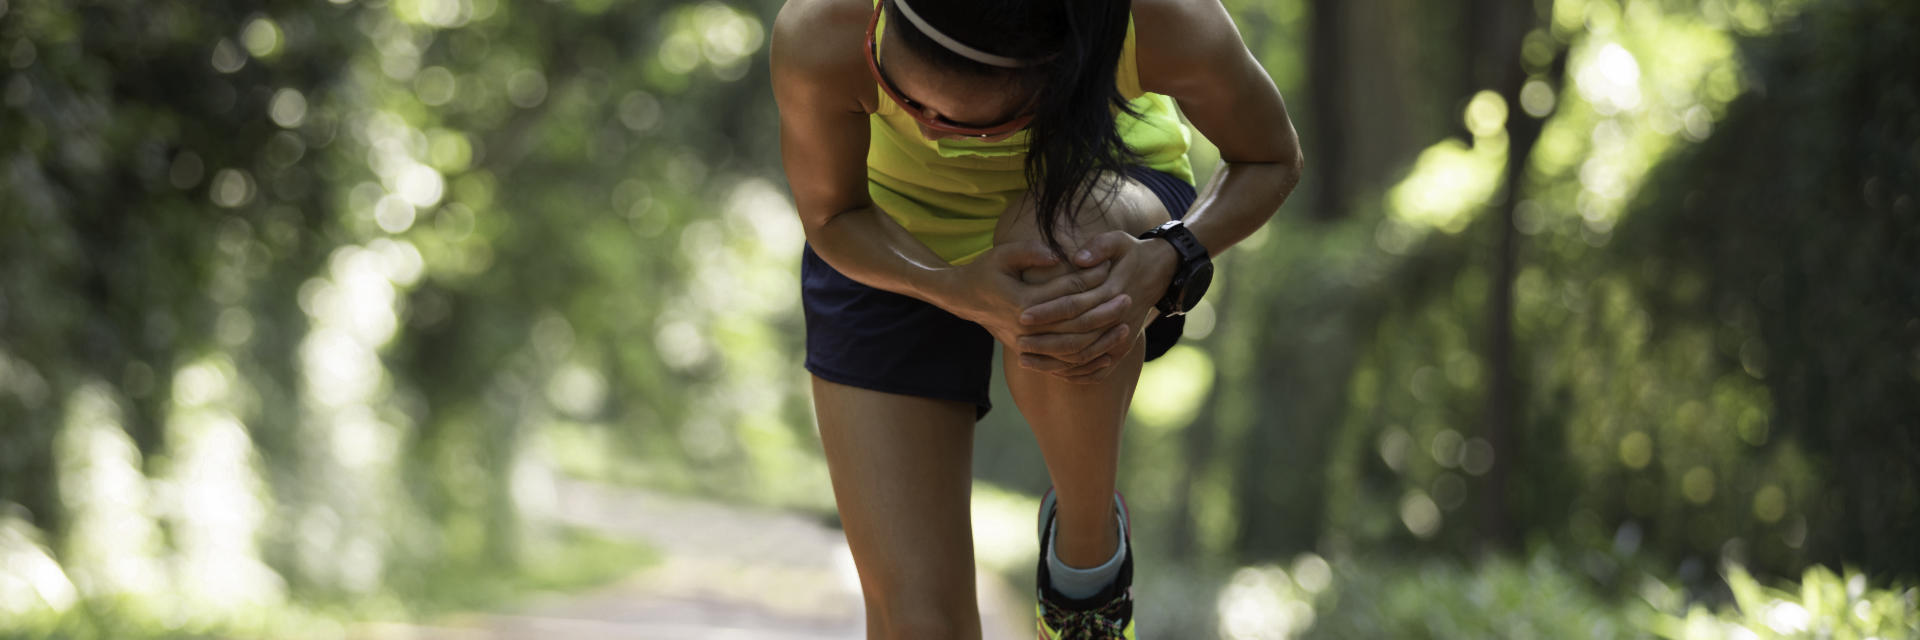 A runner stopped by unexpected knee pain gabbing her painful knee joint.